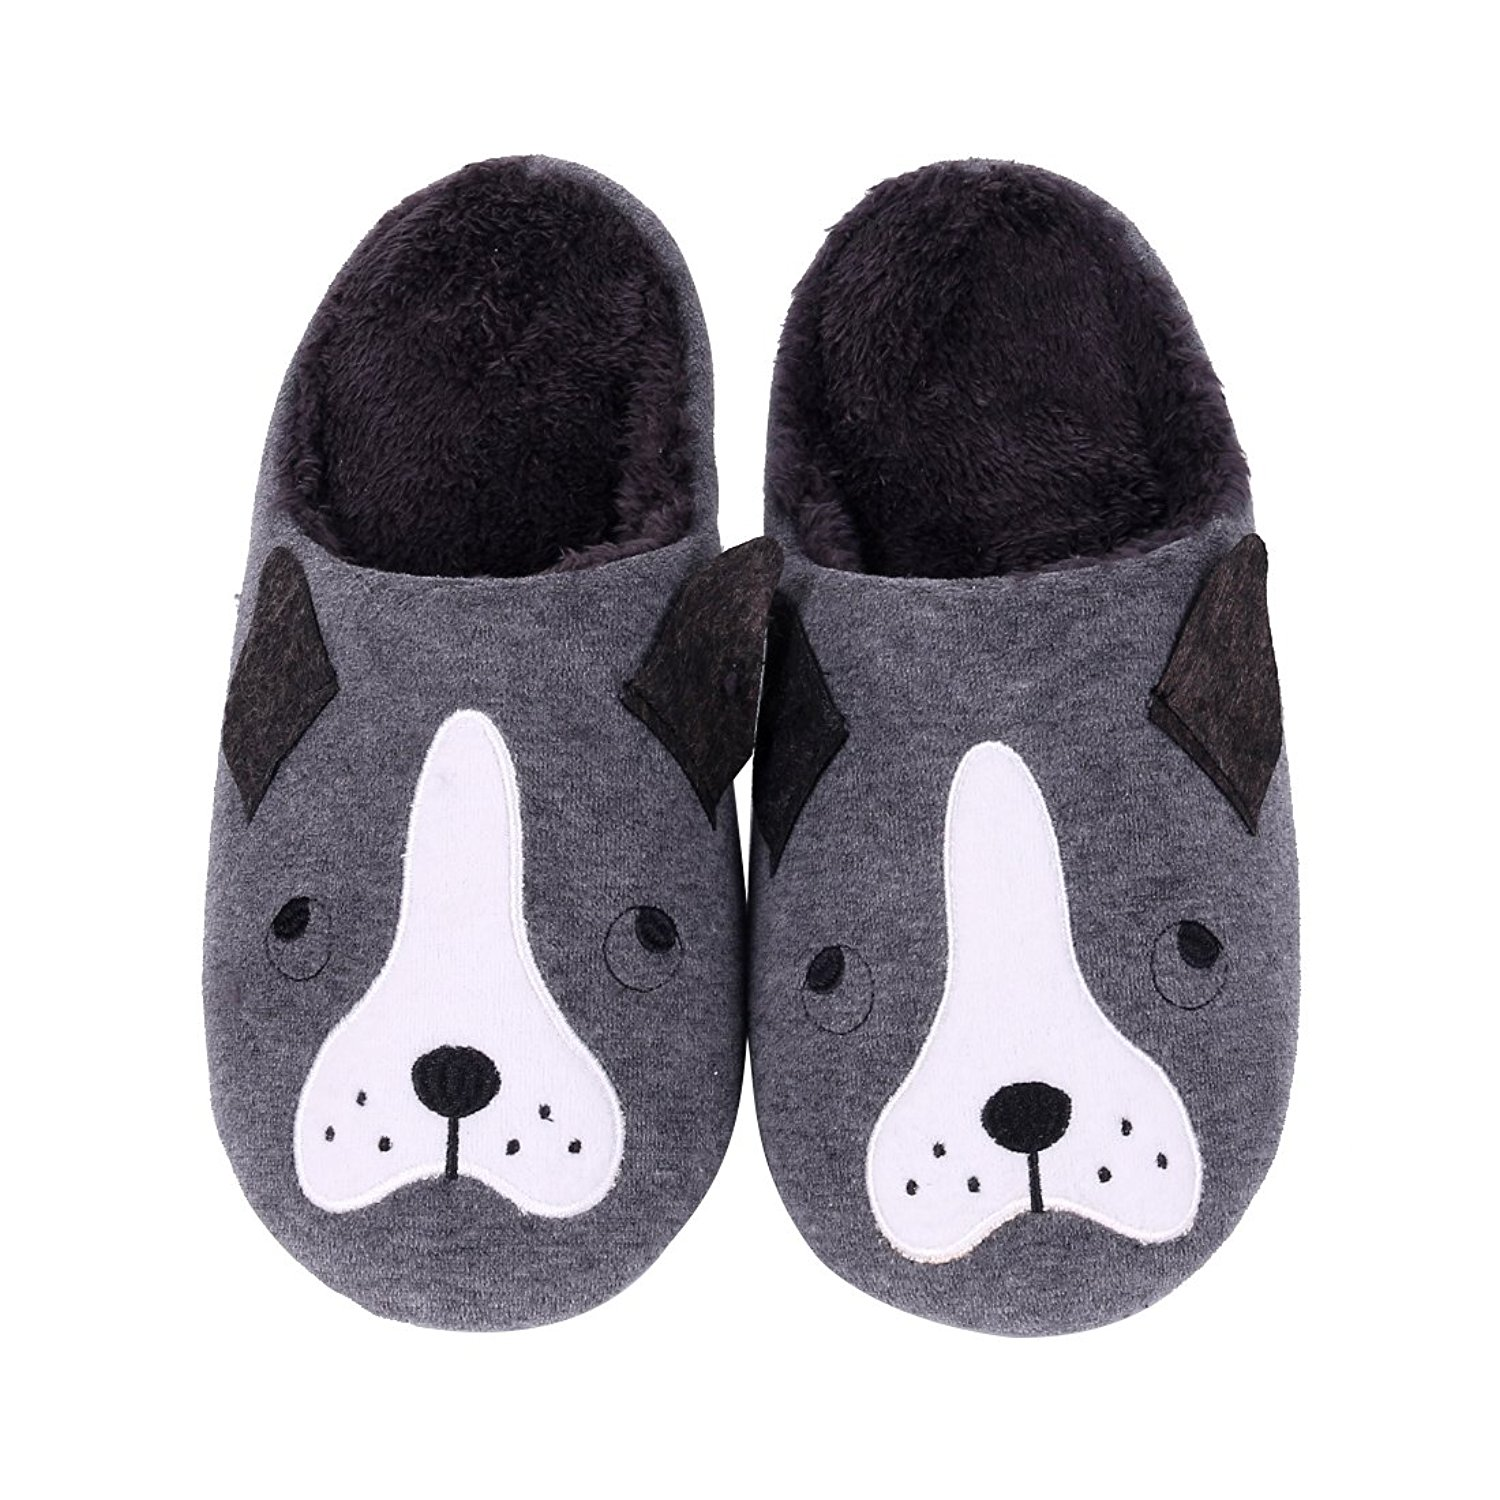 4e92ca8e0f54 Get Quotations · Cute Animal House Slippers Hedgehog Dog Family Indoor  Slippers Waterproof Sole Fuzzy Bedroom Slippers for Kids